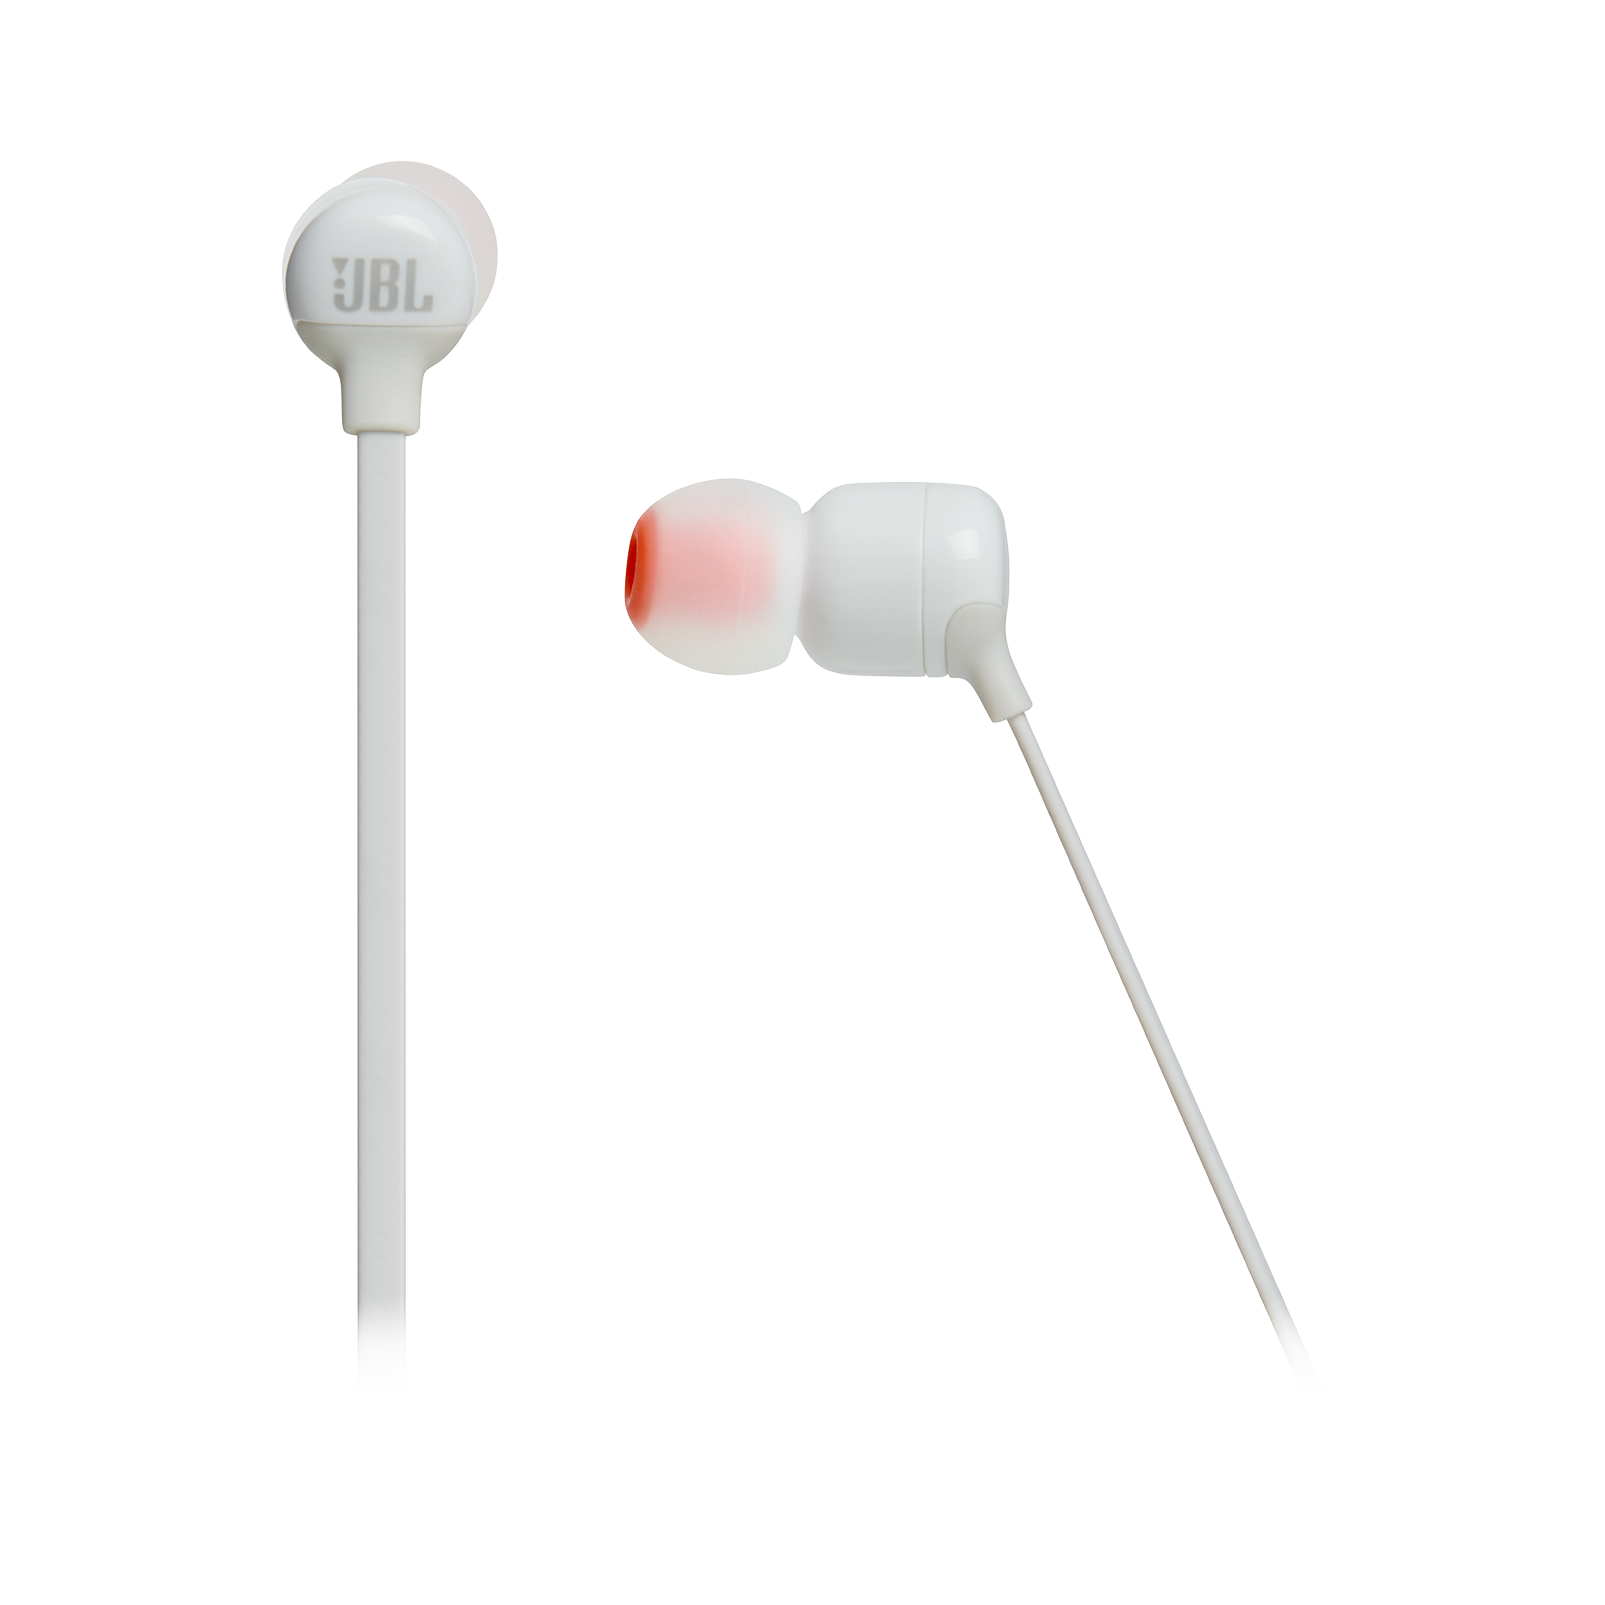 JBL TUNE 110BT - White - Wireless in-ear headphones - Detailshot 3